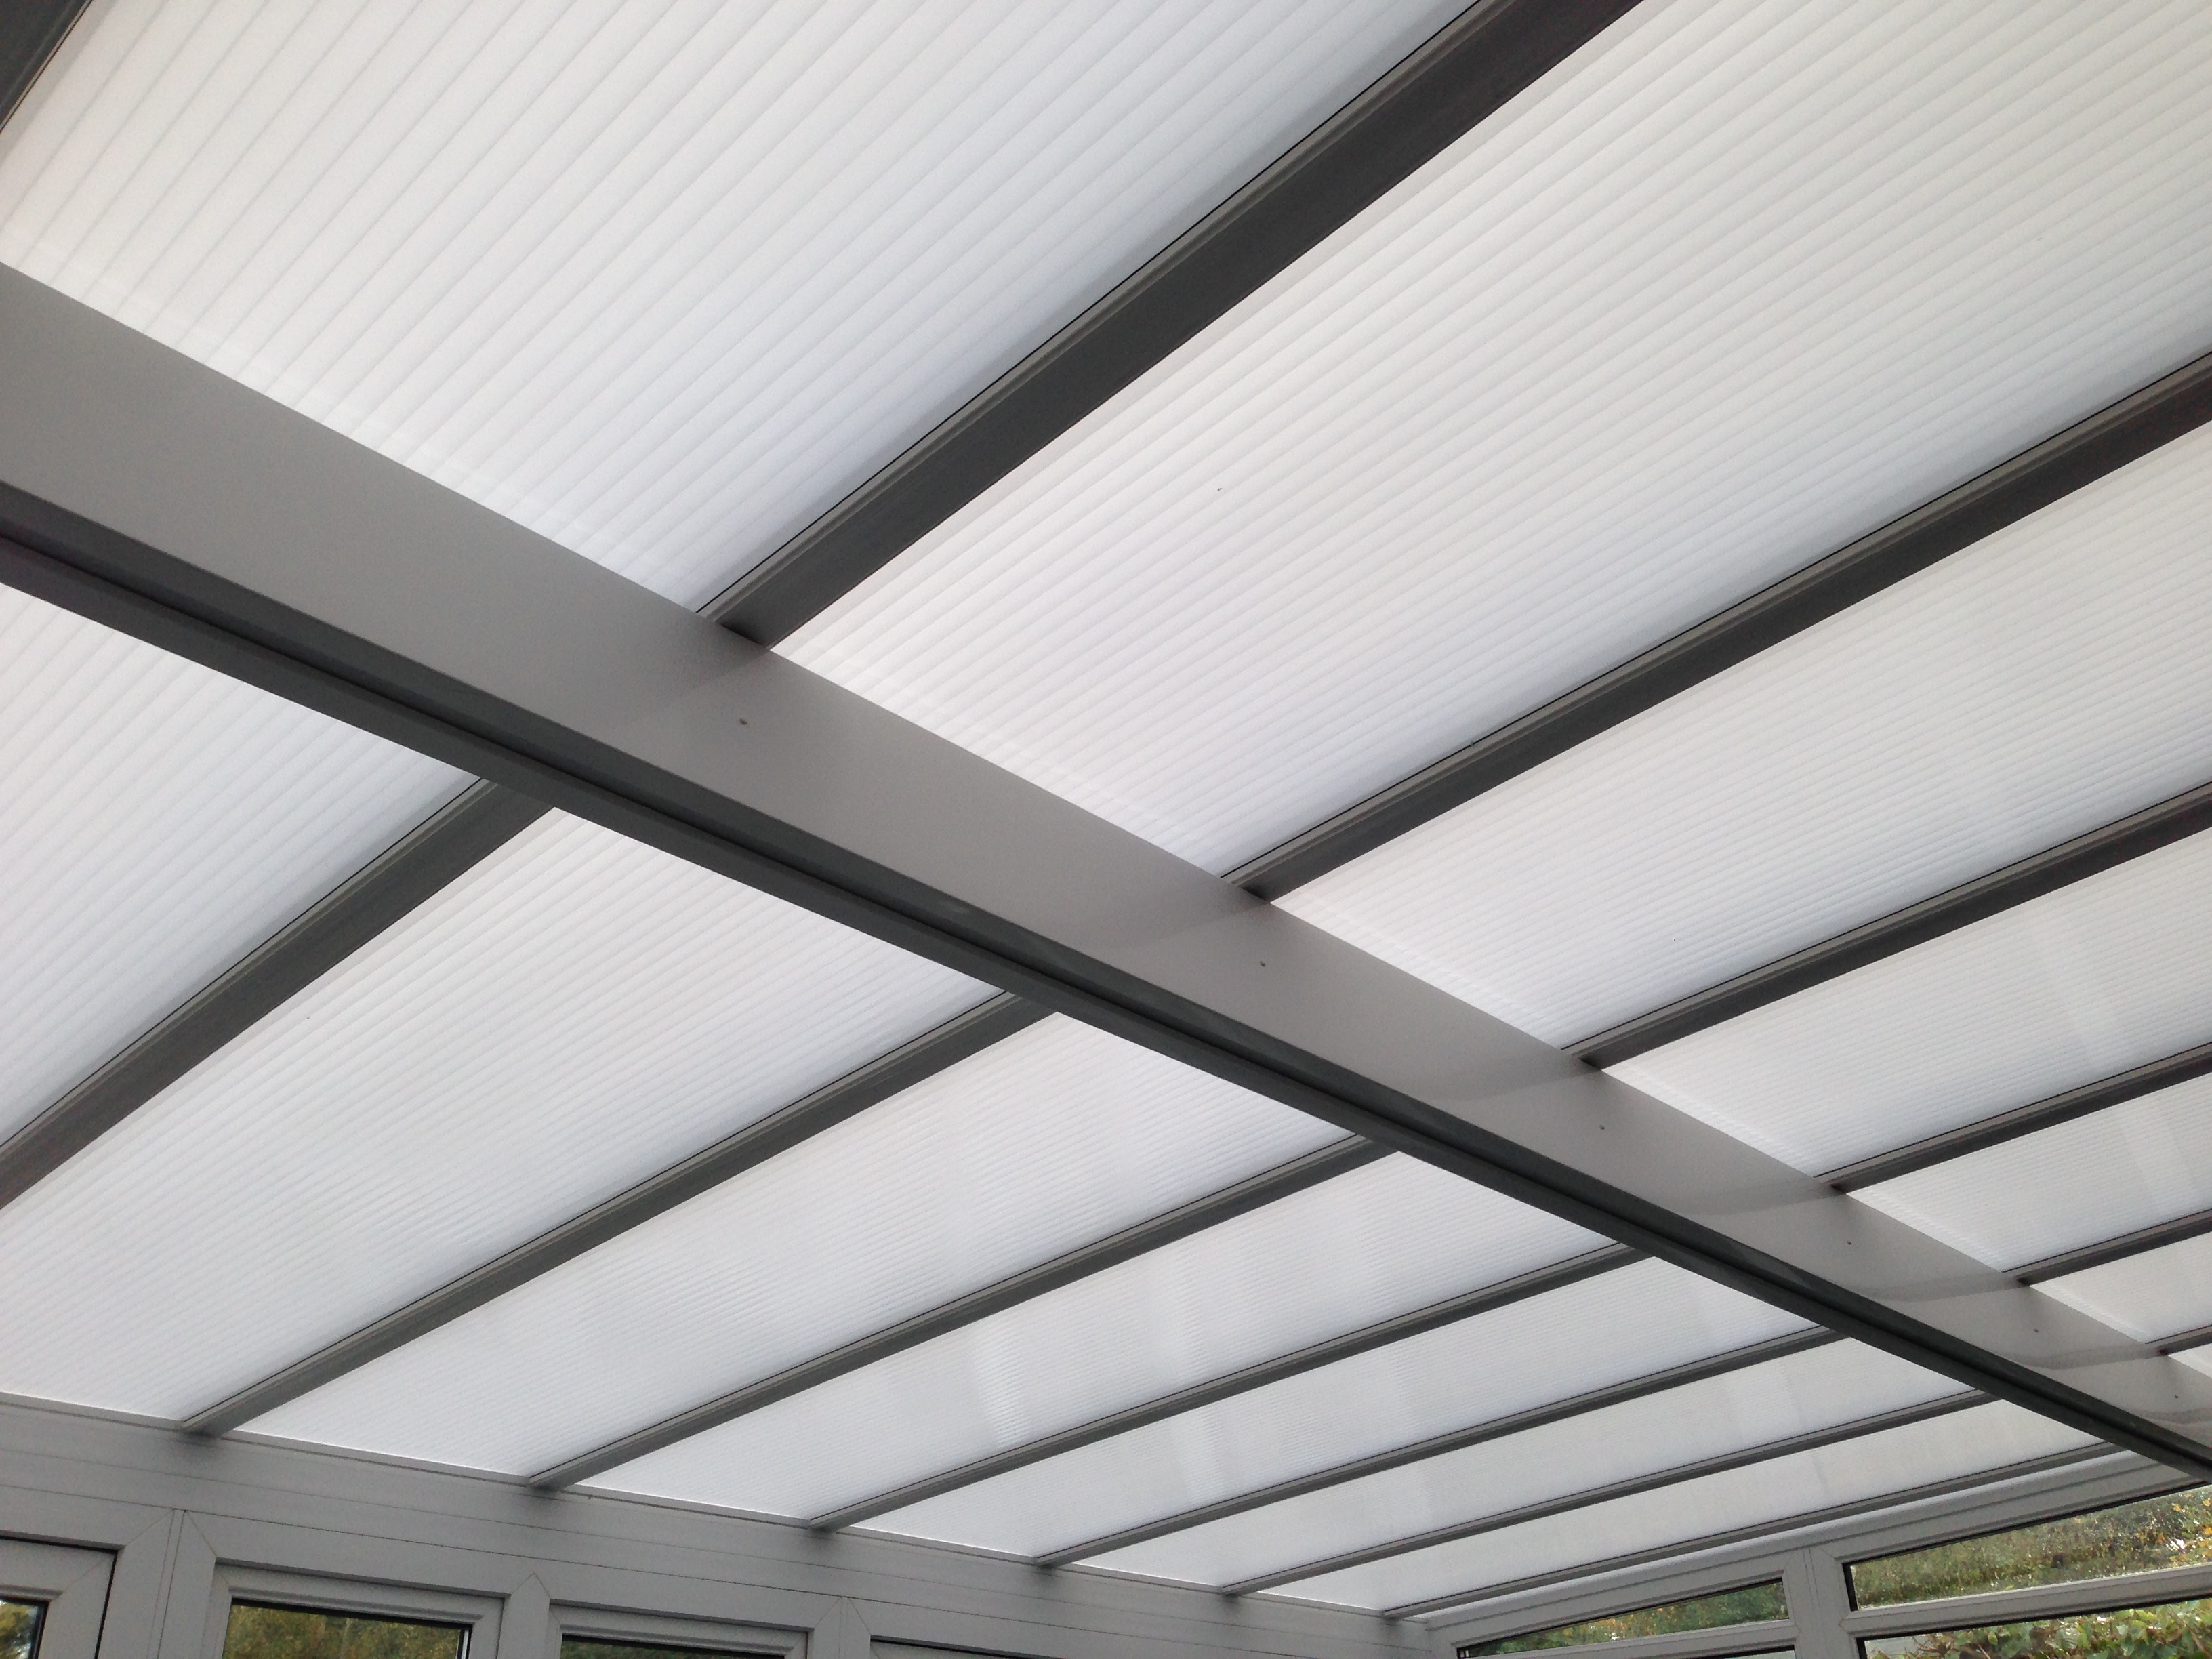 Polycarbonate Roofing: Polycarbonate Roofing Panels